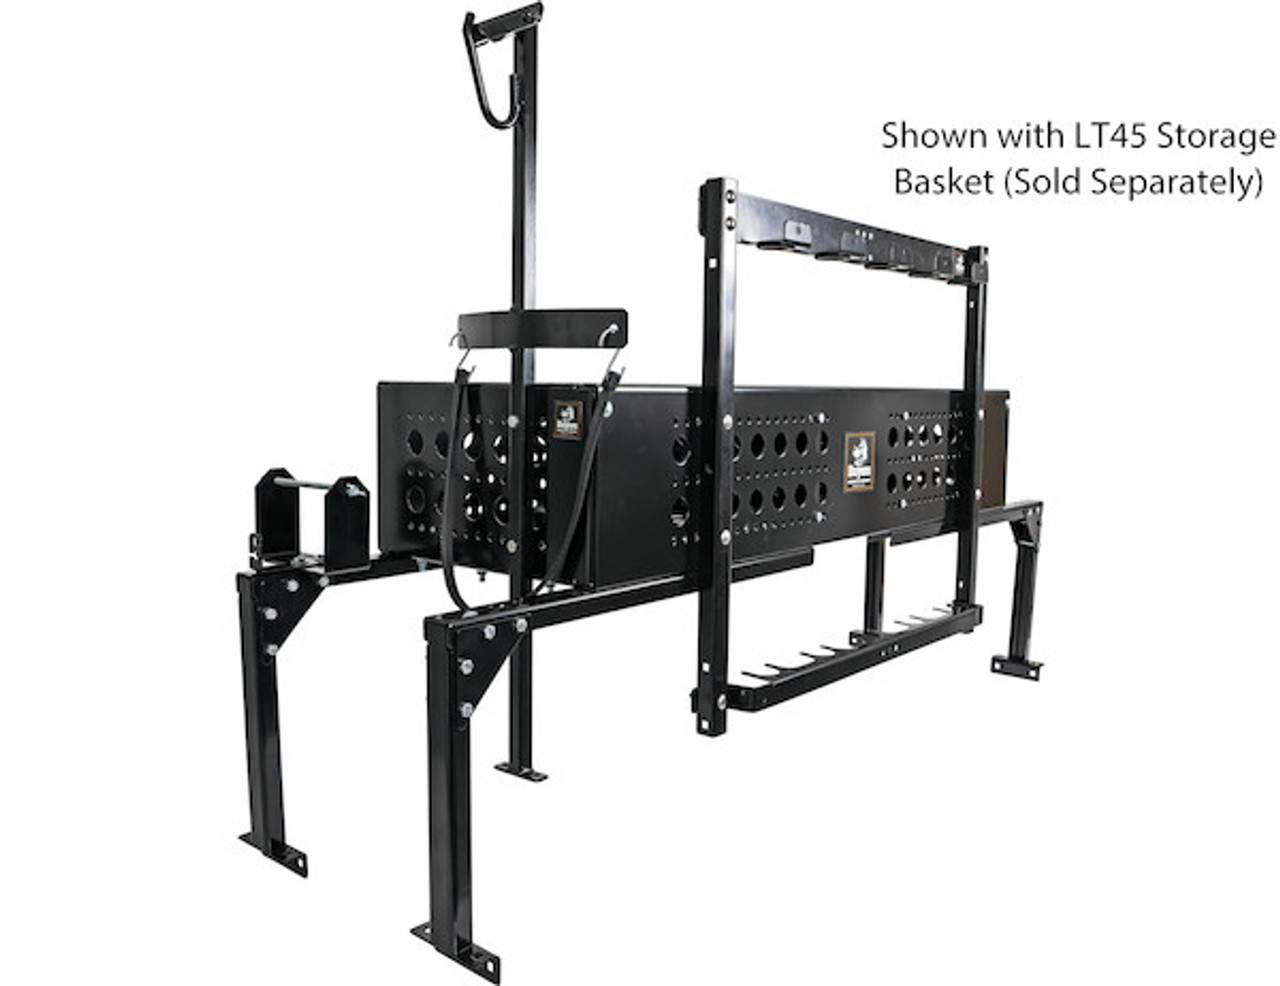 Buyers LT46 5 Position Vertical Hand Tool Rack For Open Landscape Trailers Picture # 6 Sold with LT45 Storage Basket (Sold Separately)